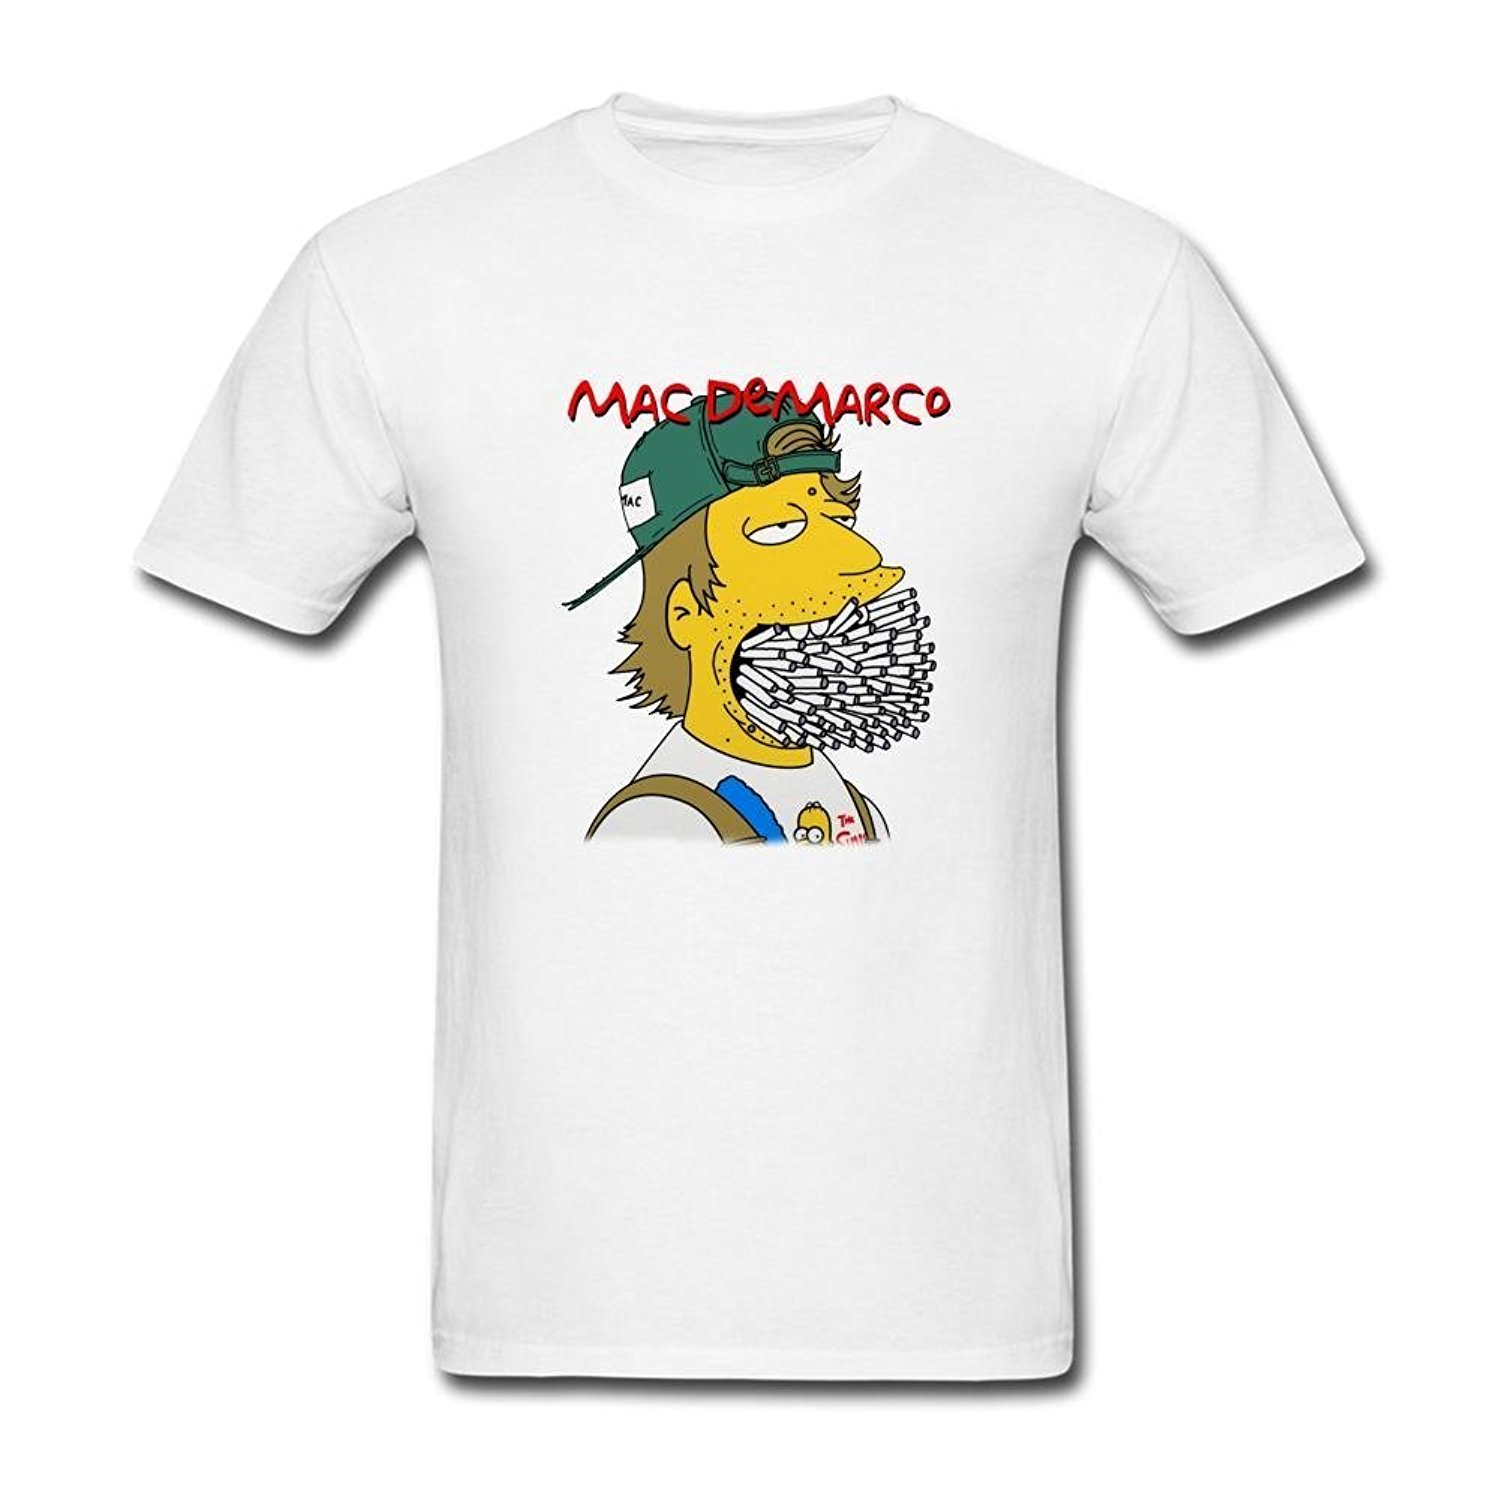 Design t shirt on mac - New 2017 Fashion Crew Neck Design Men S Short Sleeve Printing Machine Sunrain Men S Mac Demarco Art